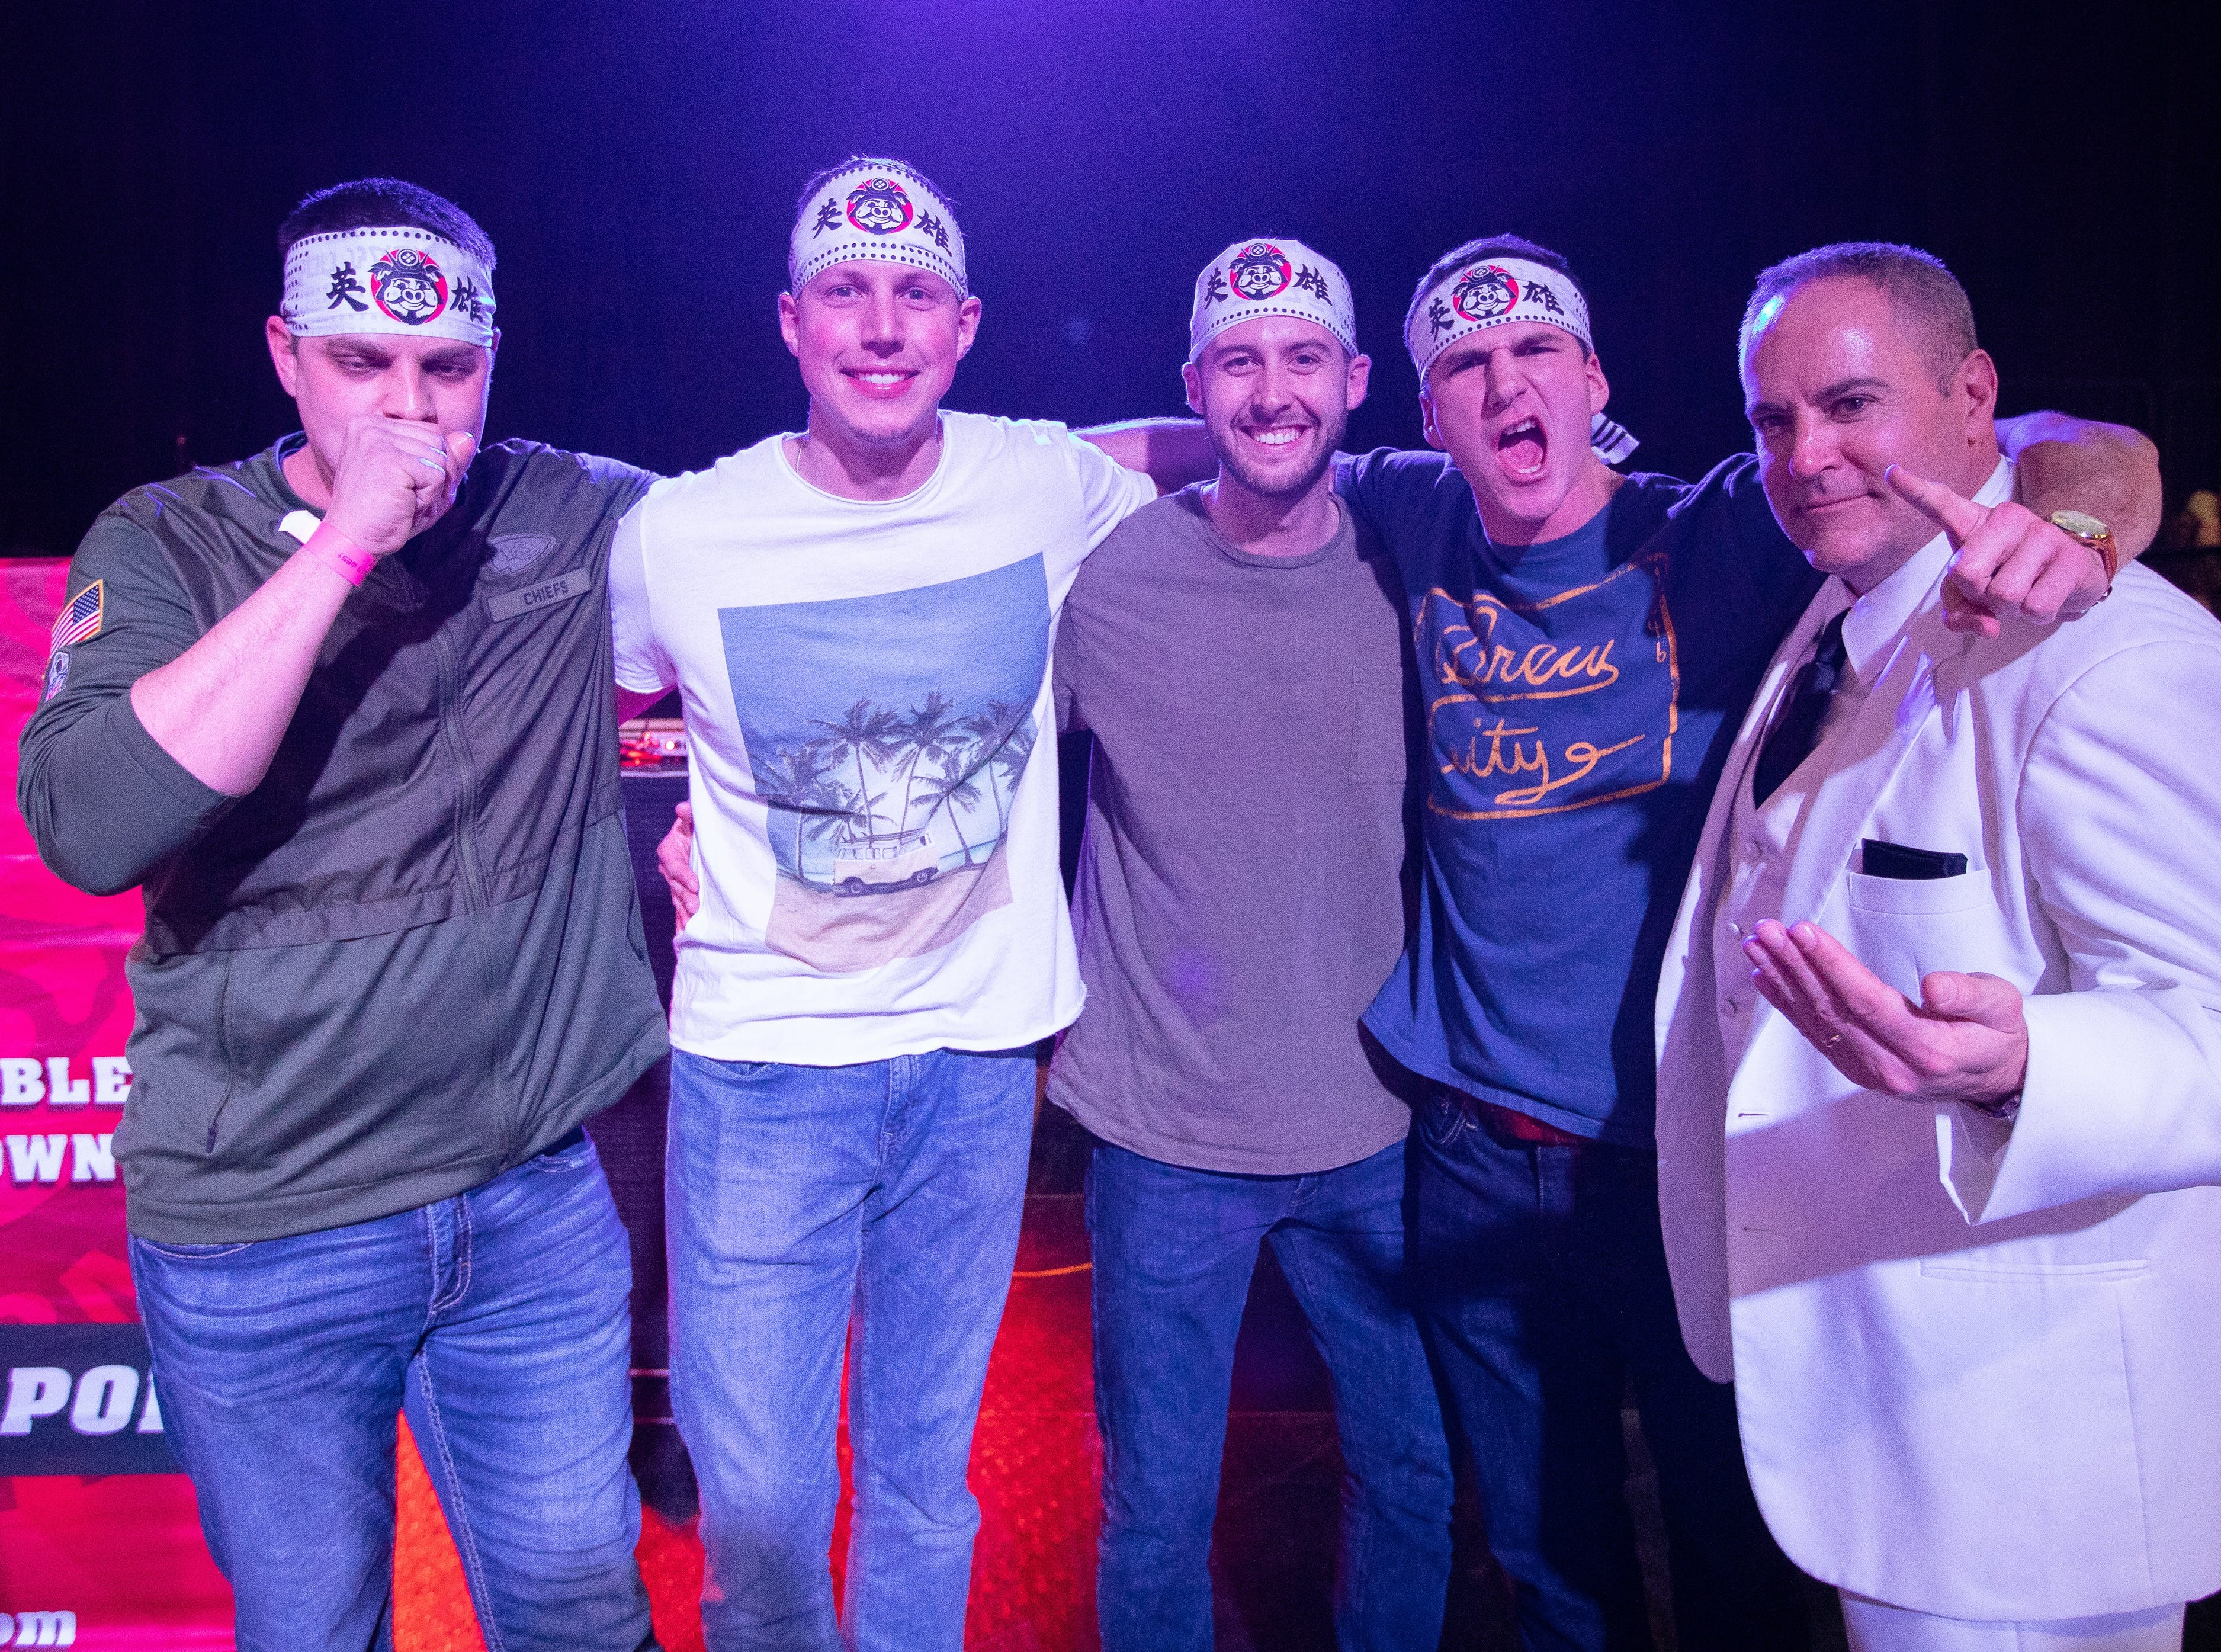 (L to R) Matt Baker, Jake Logan, Garrett Crall, James Grunert, and Paul Schulte pose for a photo after the eating contest during the Bacon Fest at Hy-Vee Hall on Feb. 16, 2019 in Des Moines, Iowa.